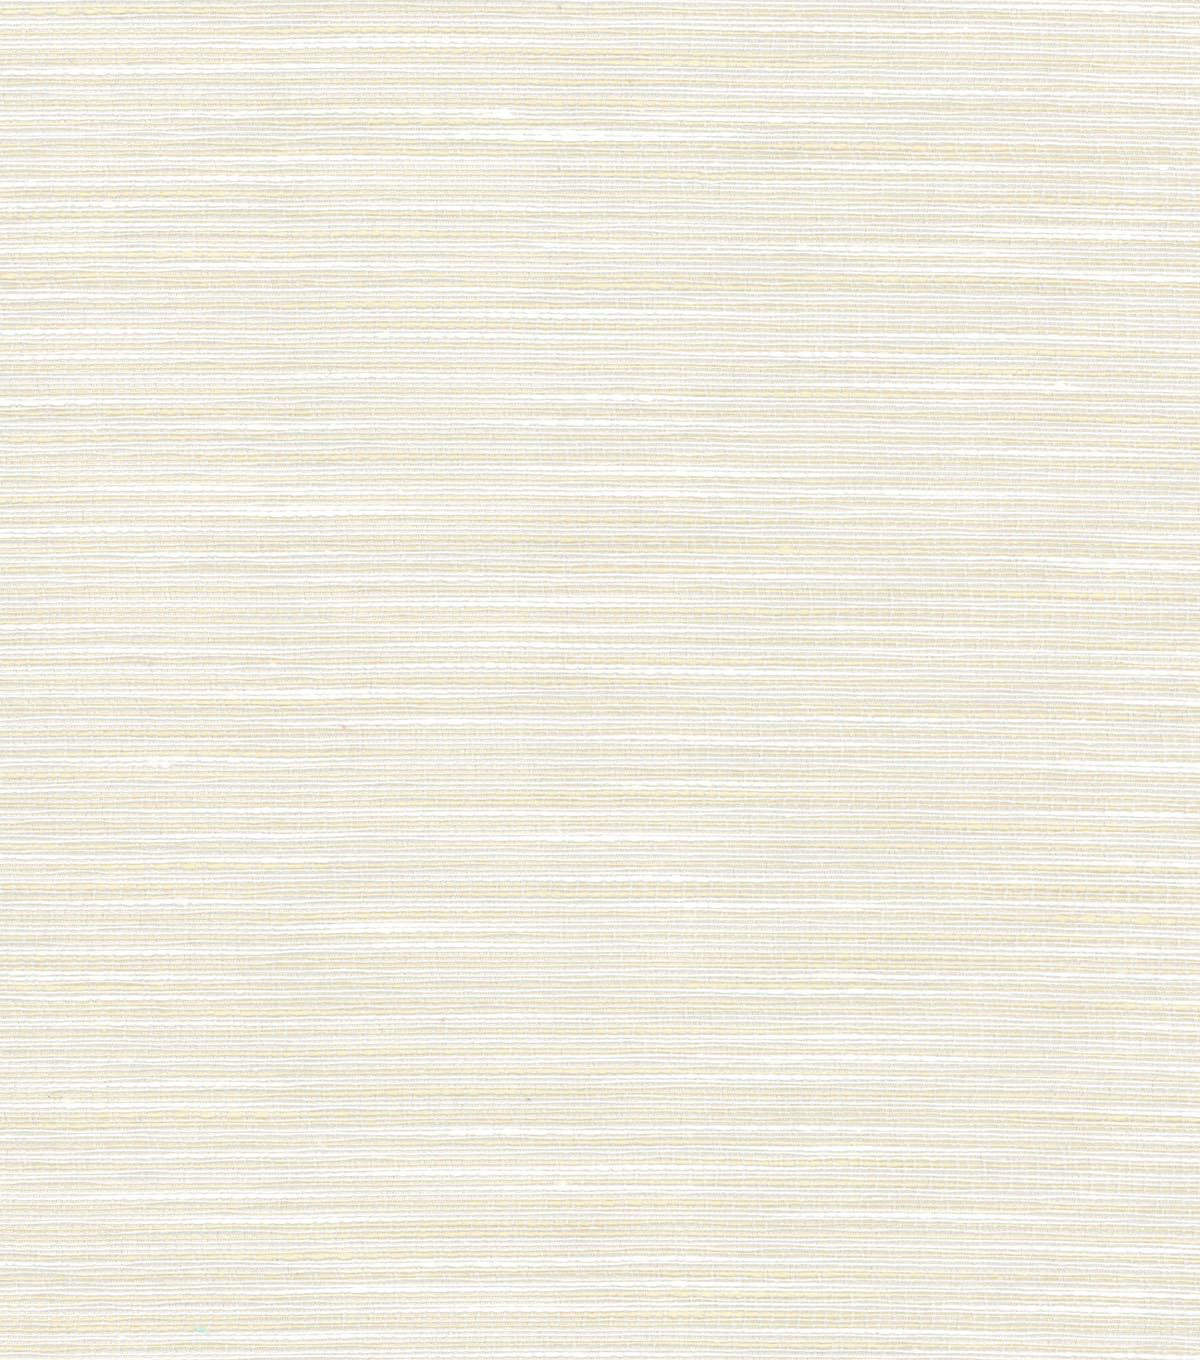 Home Decor 8\u0022x8\u0022 Swatch Fabric-PK Lifestyles Shimmy Eggshell